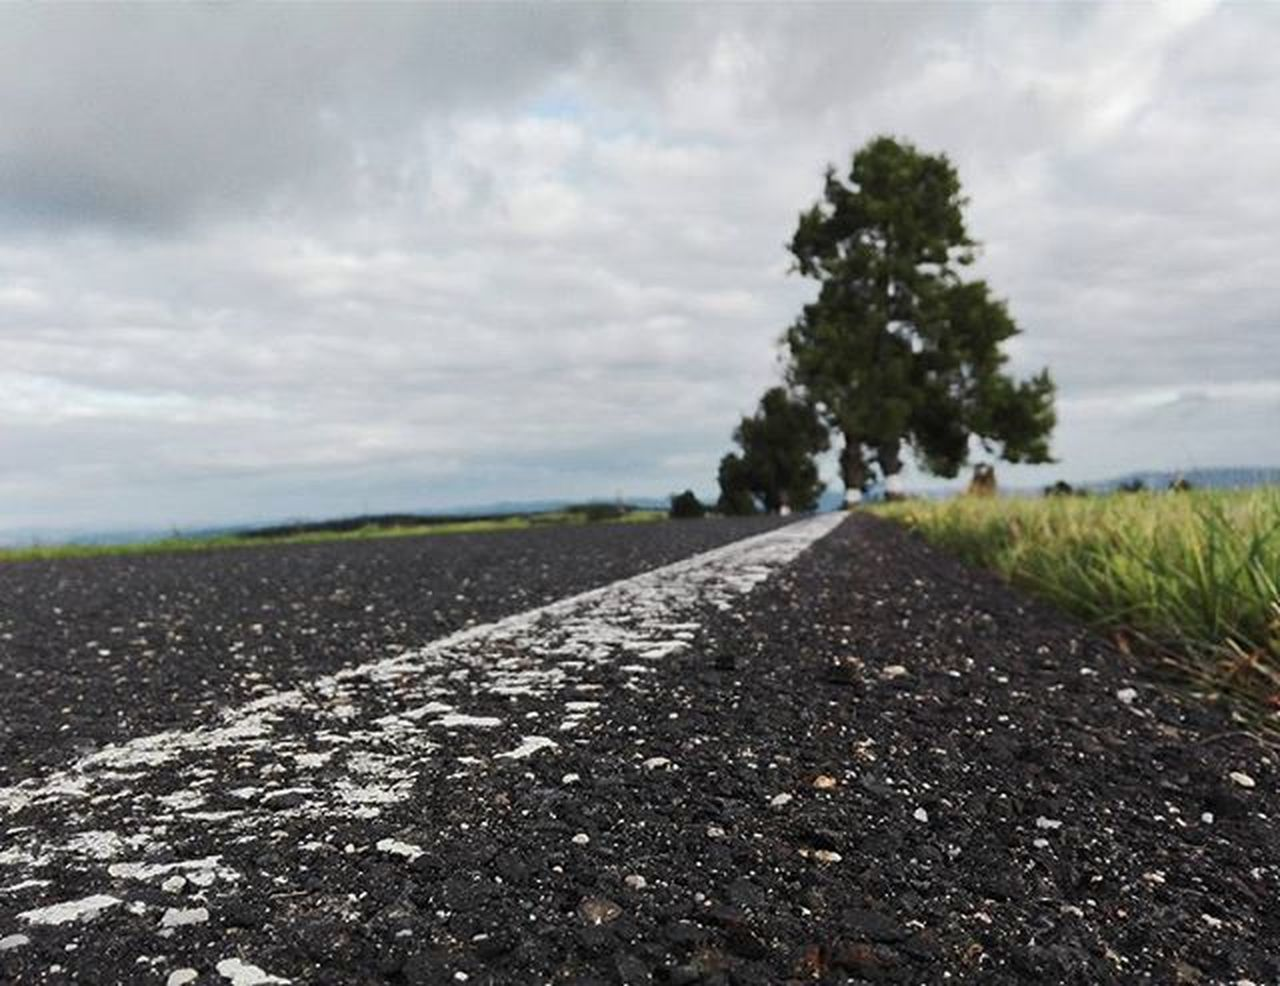 road, cloud - sky, the way forward, sky, outdoors, day, nature, no people, landscape, transportation, asphalt, tree, tranquility, rural scene, scenics, close-up